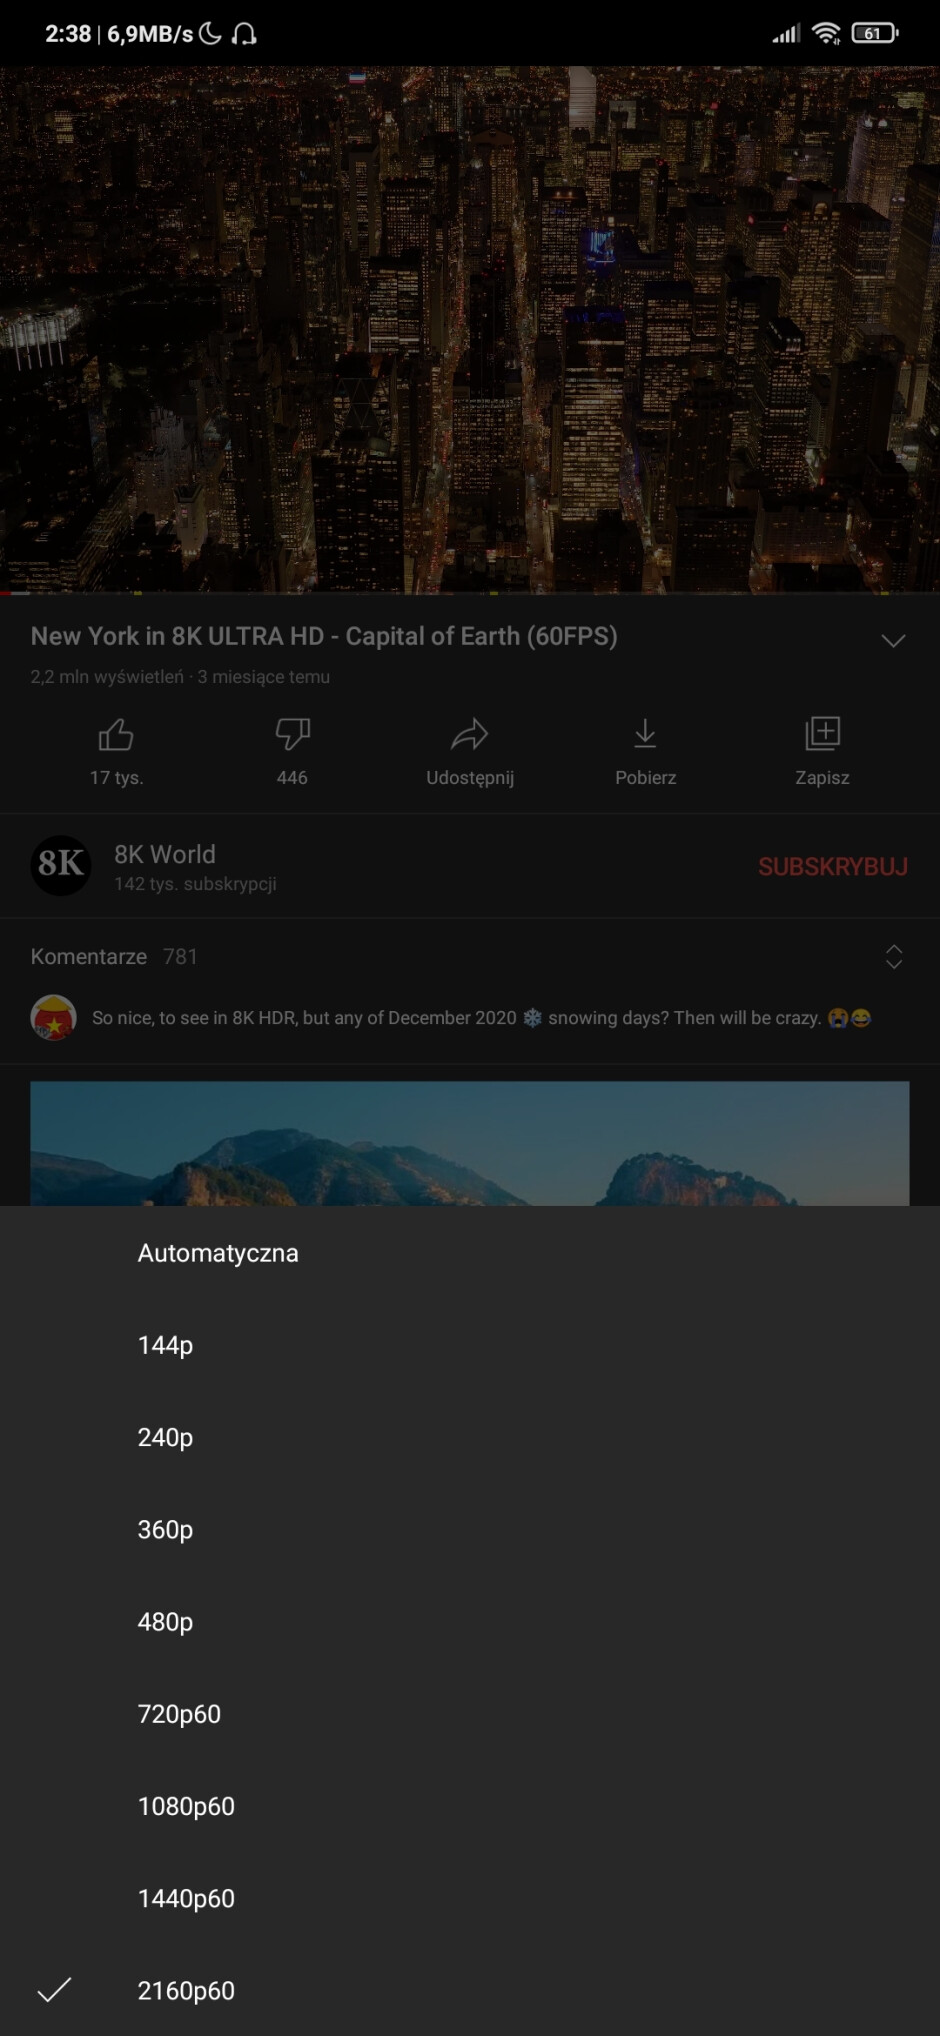 The YouTube app can now play 4K HDR videos on Android devices